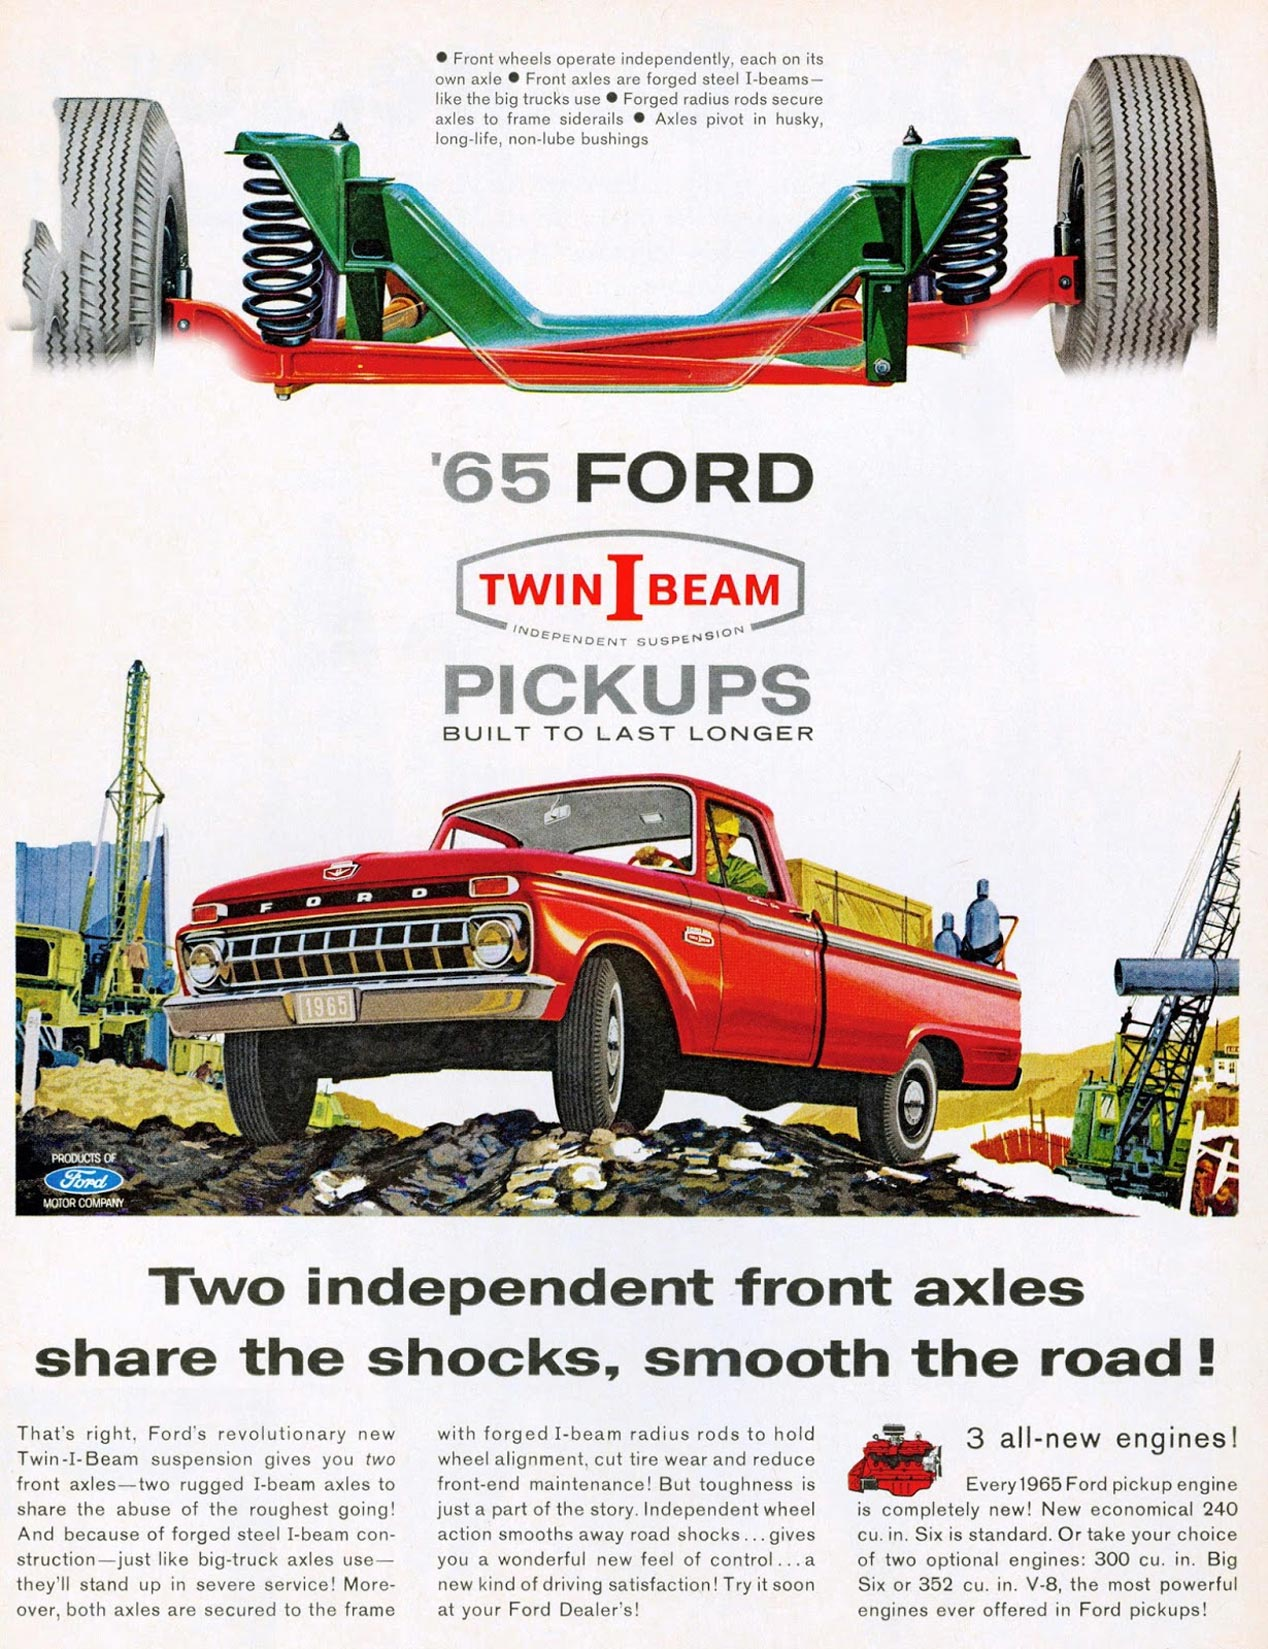 100 años de historia: los pick-up de Ford